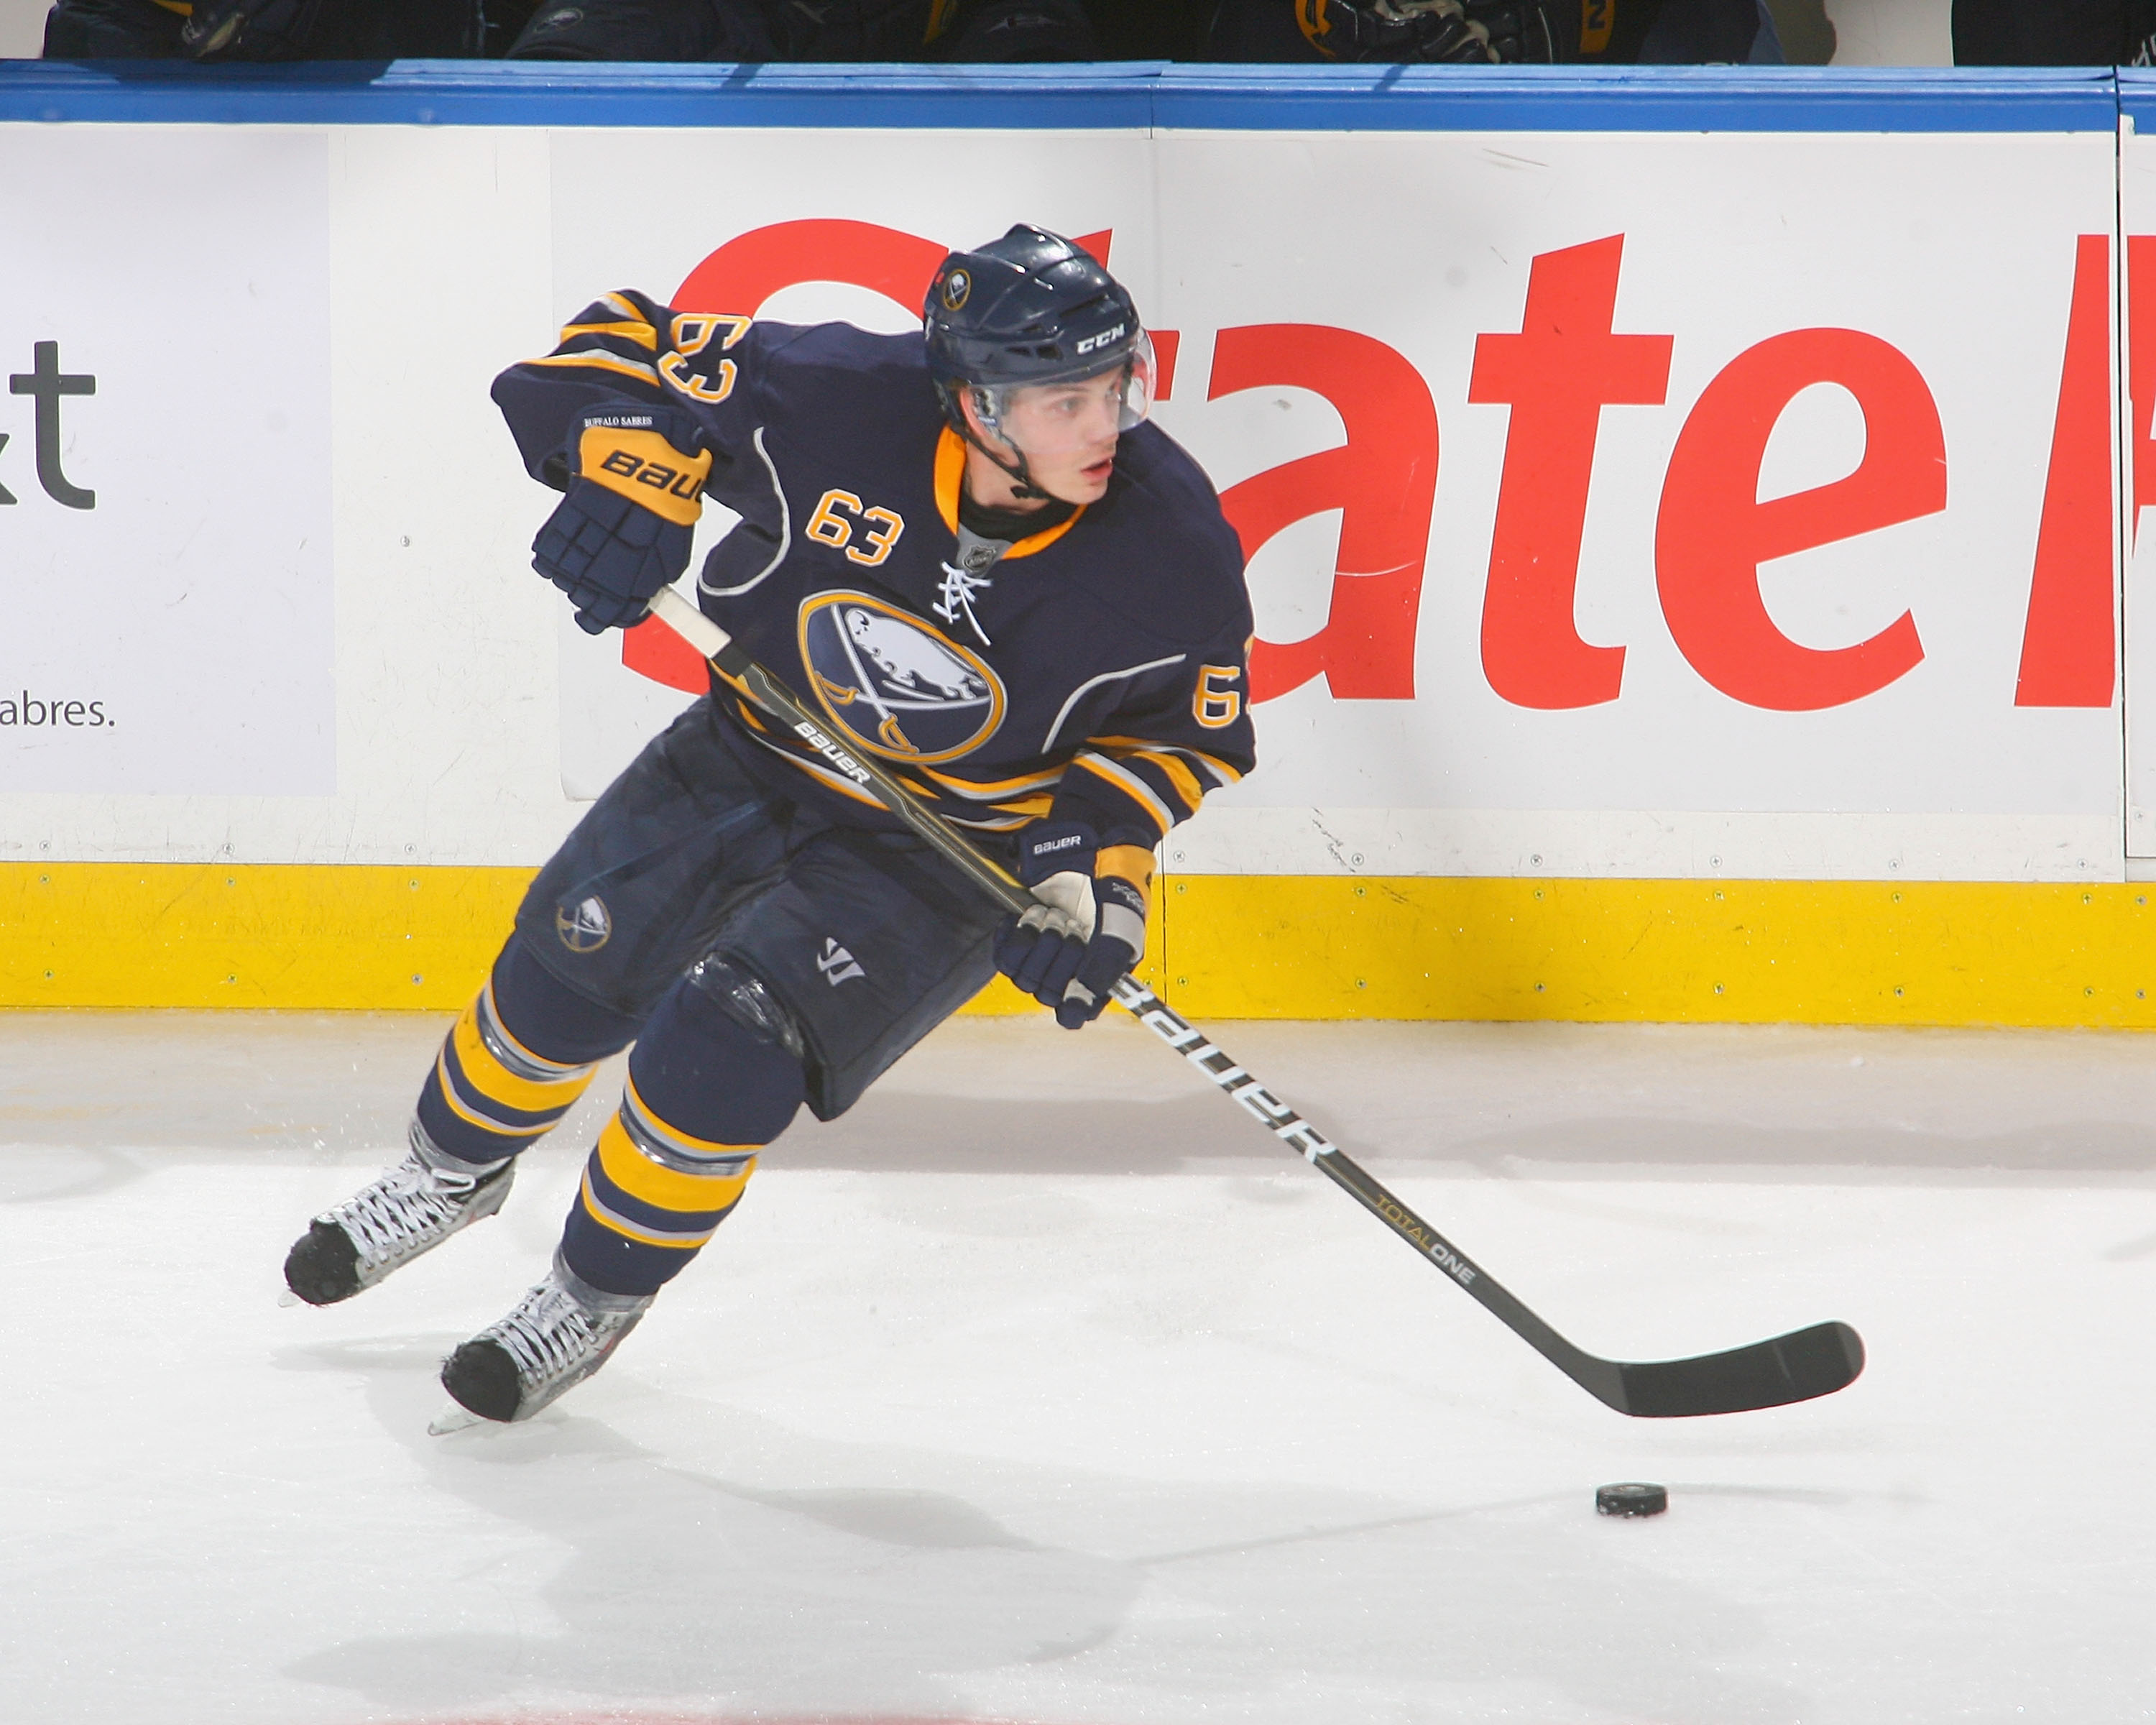 BUFFALO, NY - JANUARY 18: Tyler Ennis #63 of the Buffalo Sabres skates against the Montreal Canadiens at HSBC Arena on January 18, 2011 in Buffalo, New York. Buffalo won 2-1 in overtime.  (Photo by Rick Stewart/Getty Images)